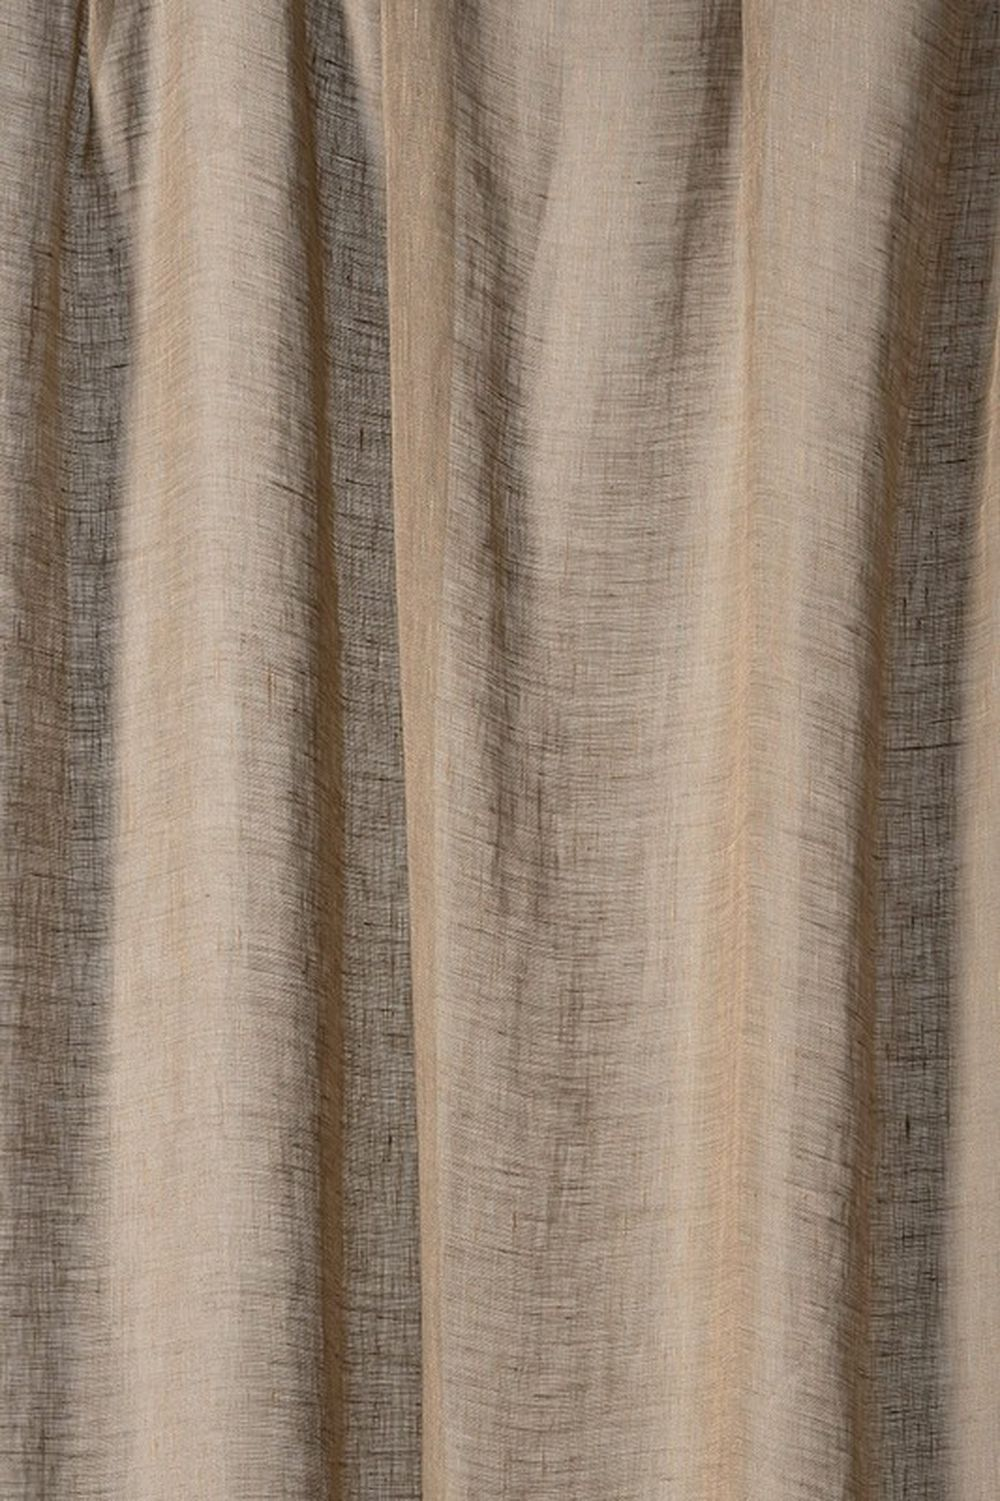 Photo of the fabric Lino Smoky Quartz swatch by Mokum. Use for Sheer Curtains. Style of Plain, Sheer, Texture